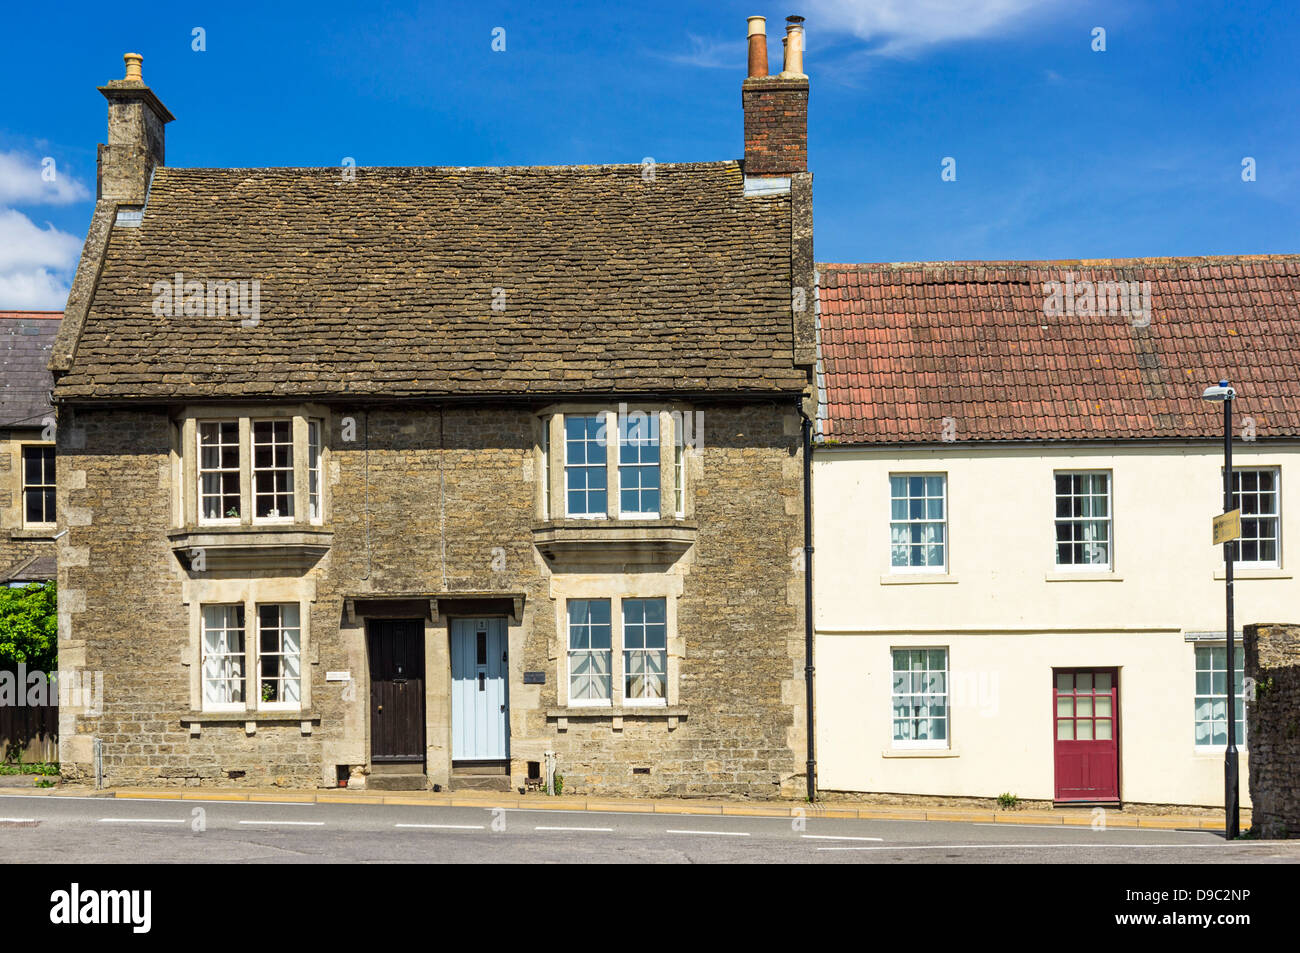 Old cottages in a village, England, Uk - Stock Image